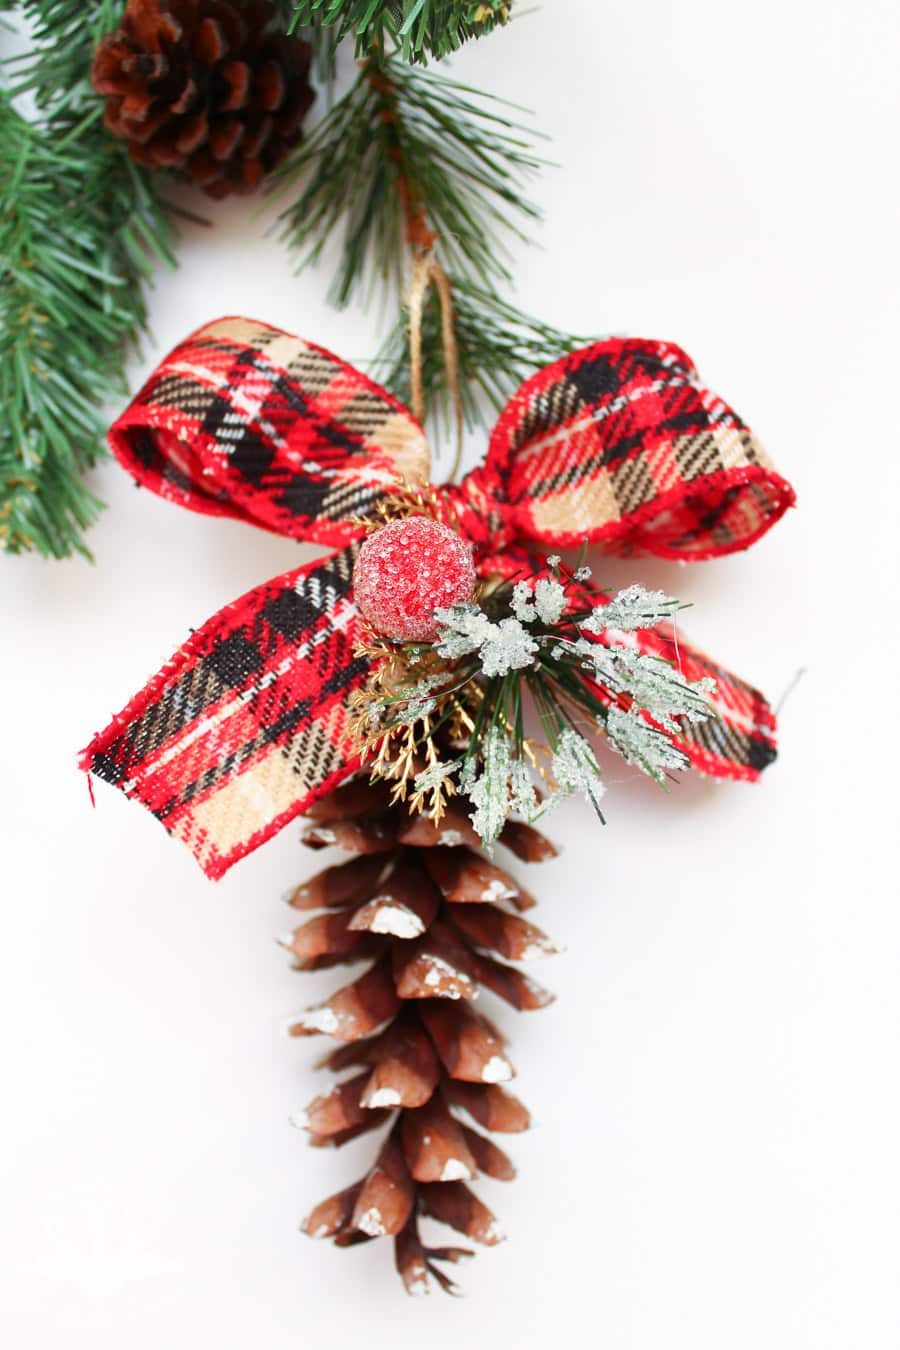 DIY pinecone ornaments with plaid ribbon bows and fake greenery and berries